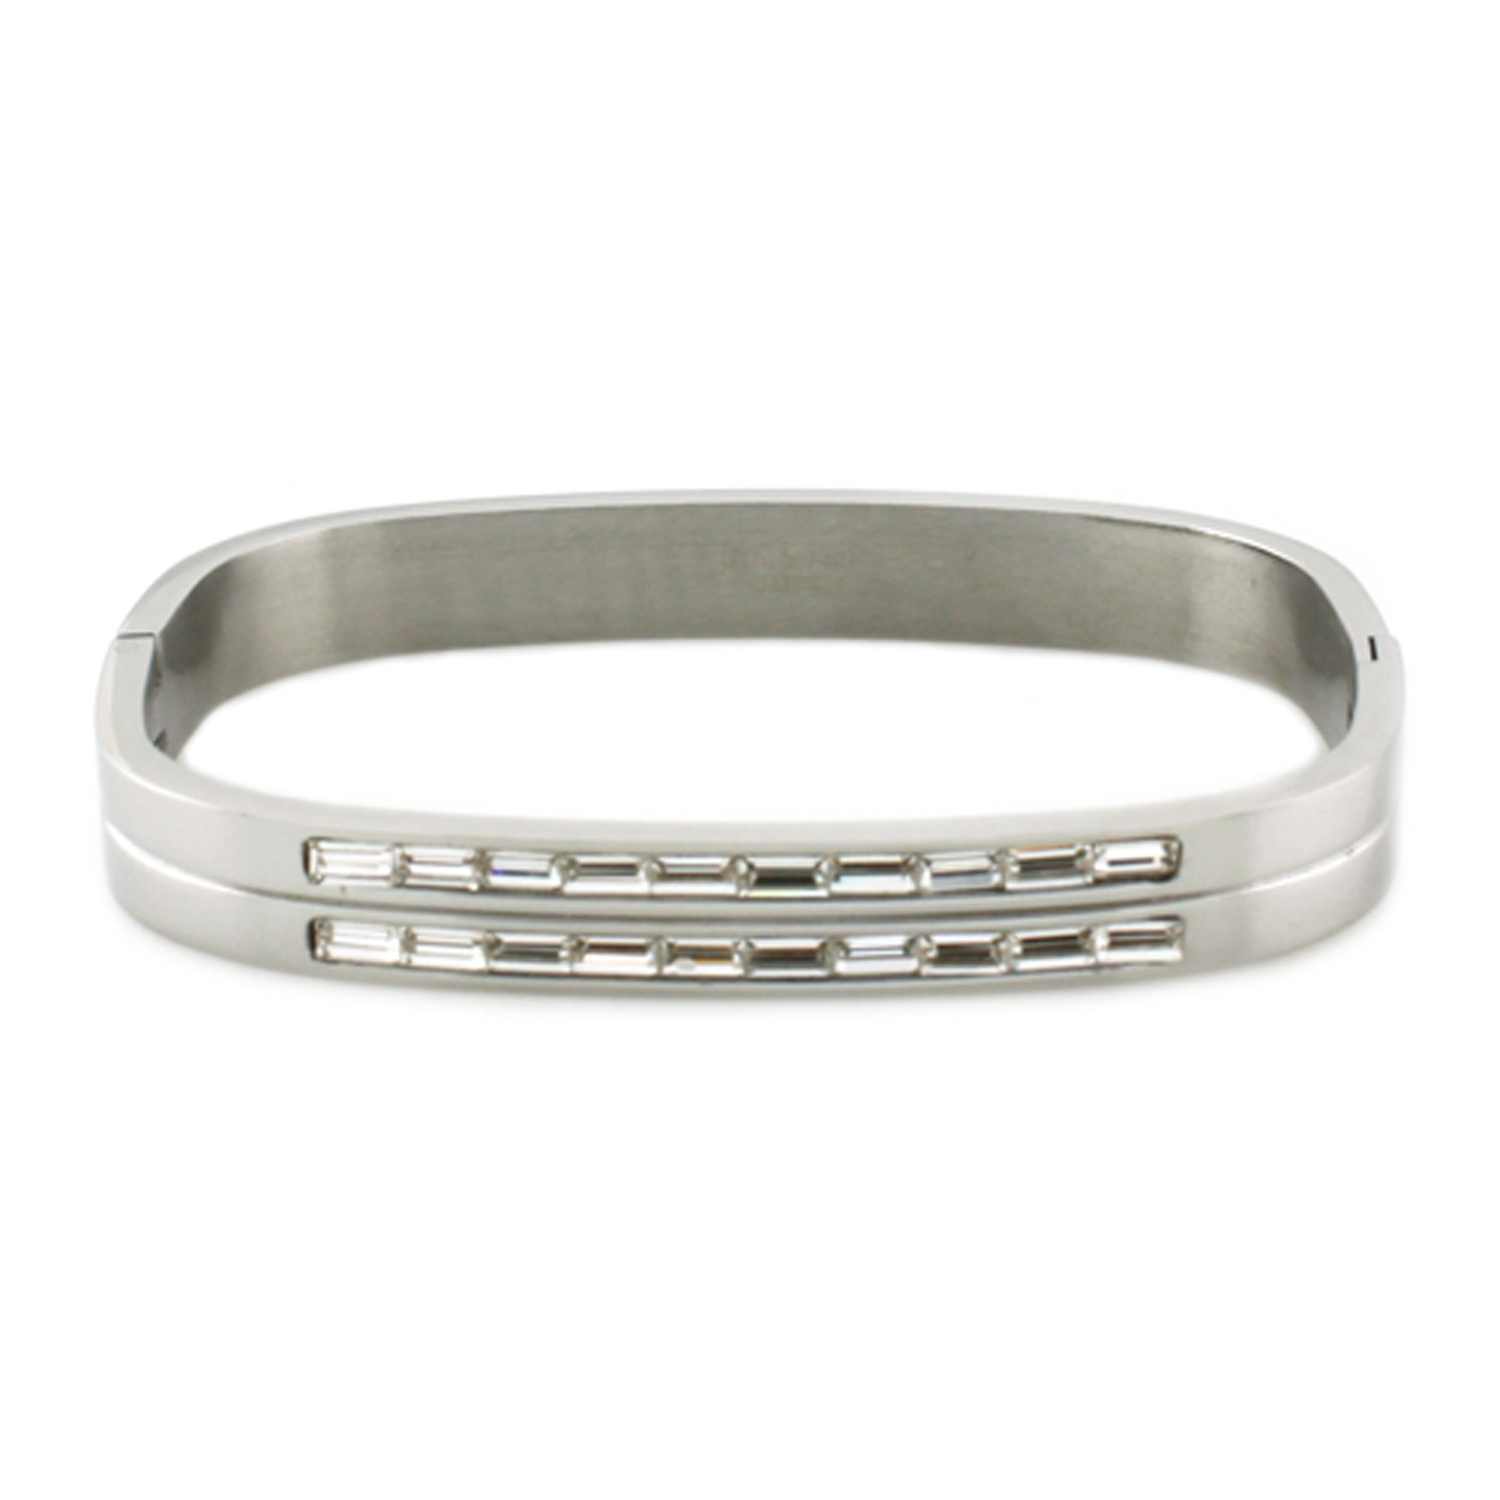 Stainless Steel Baguette CZ Channel Rectangular BANGLE